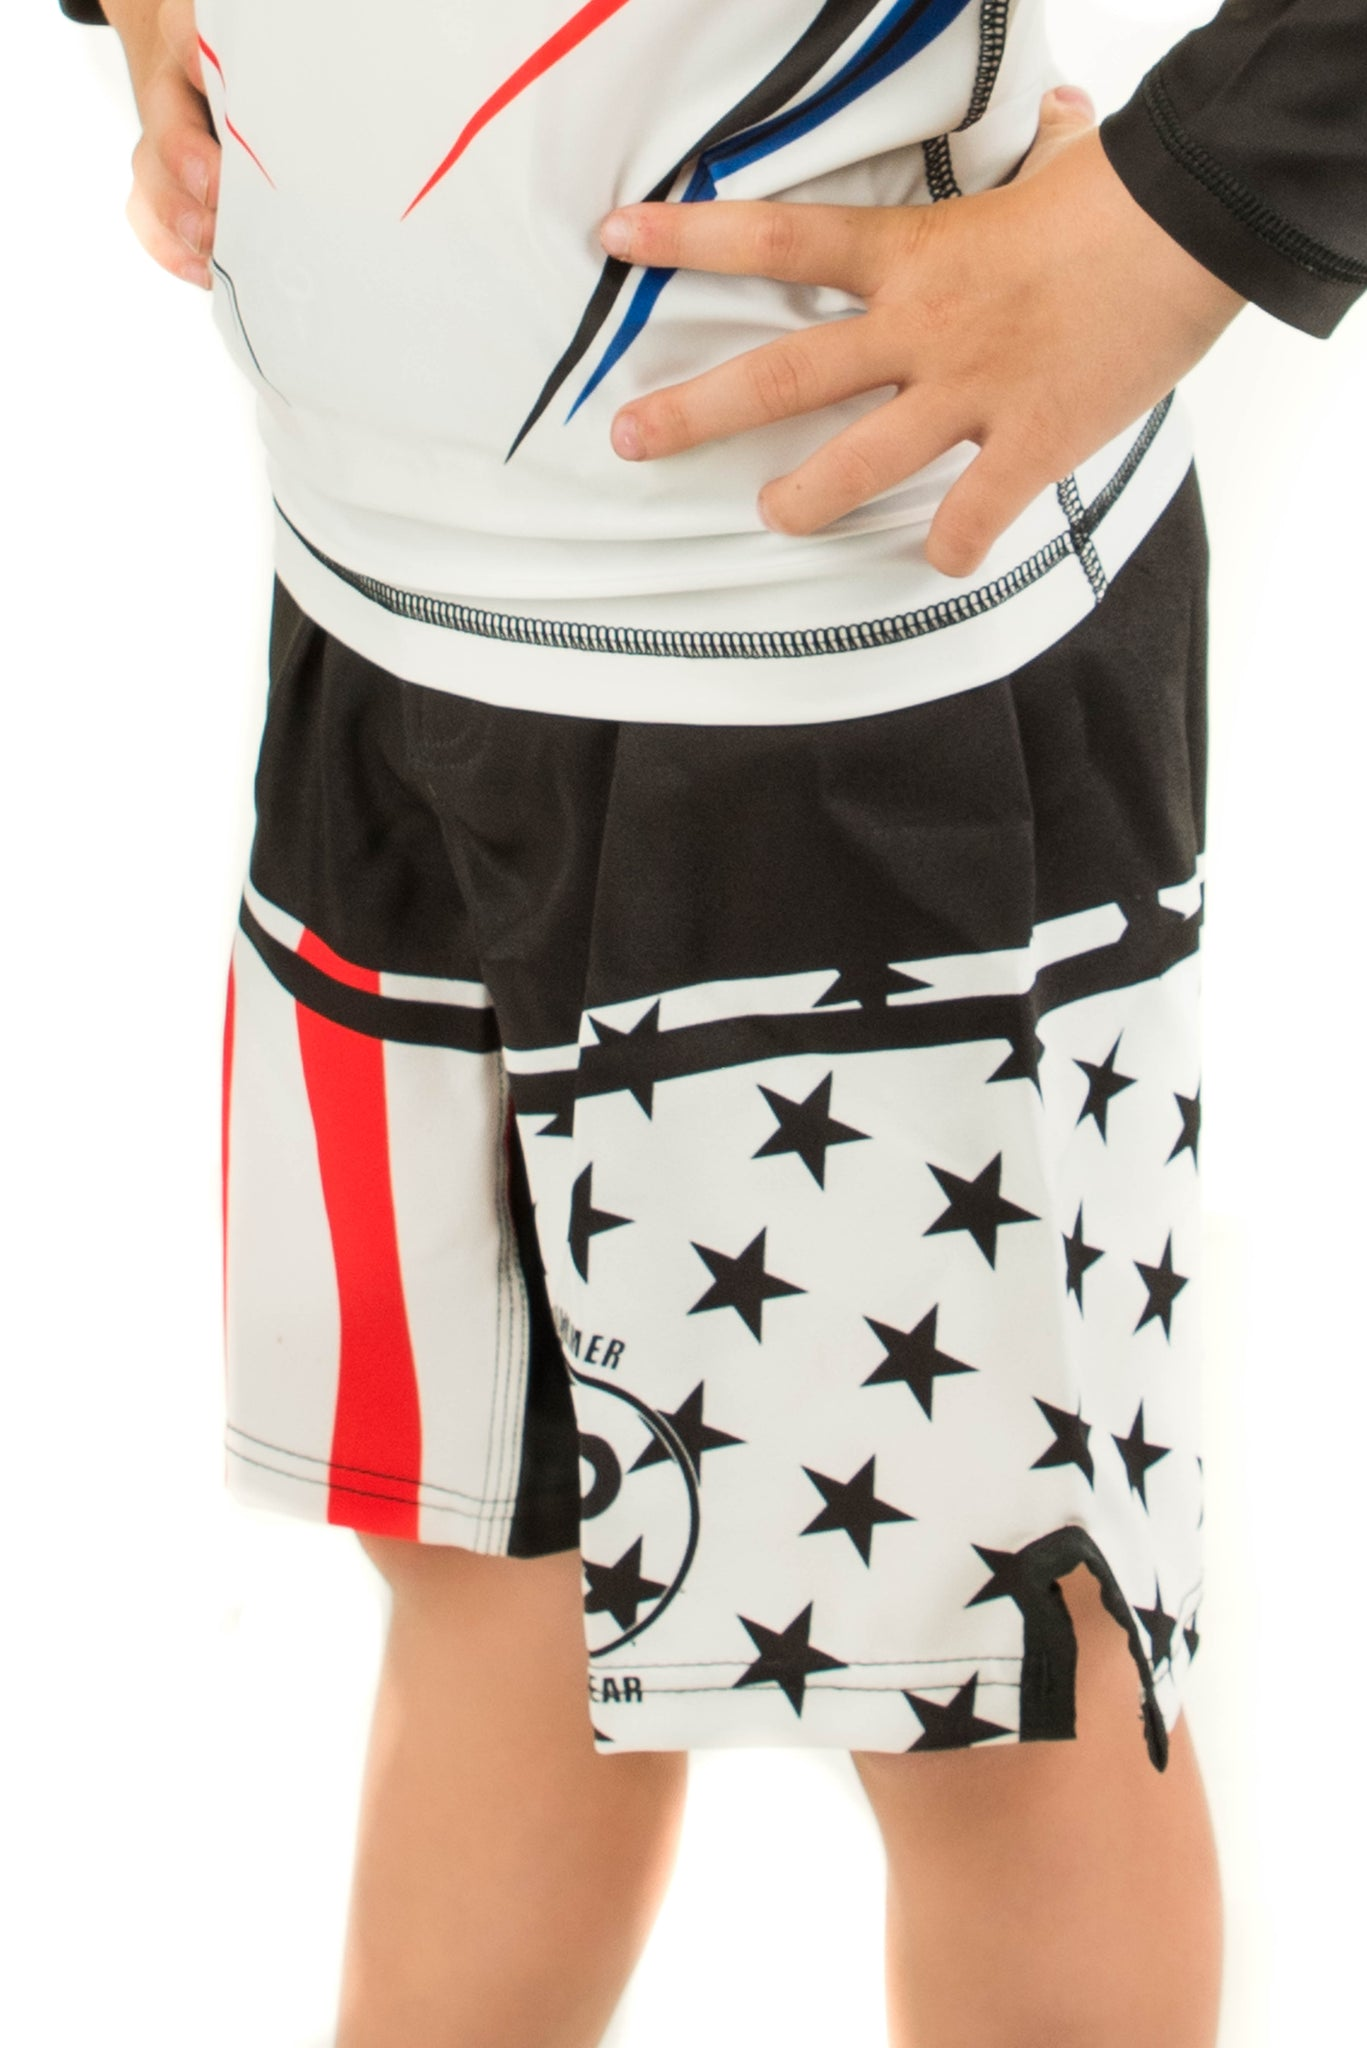 American Flag Fight Shorts White Background (Youth) - Warhammer Fightwear